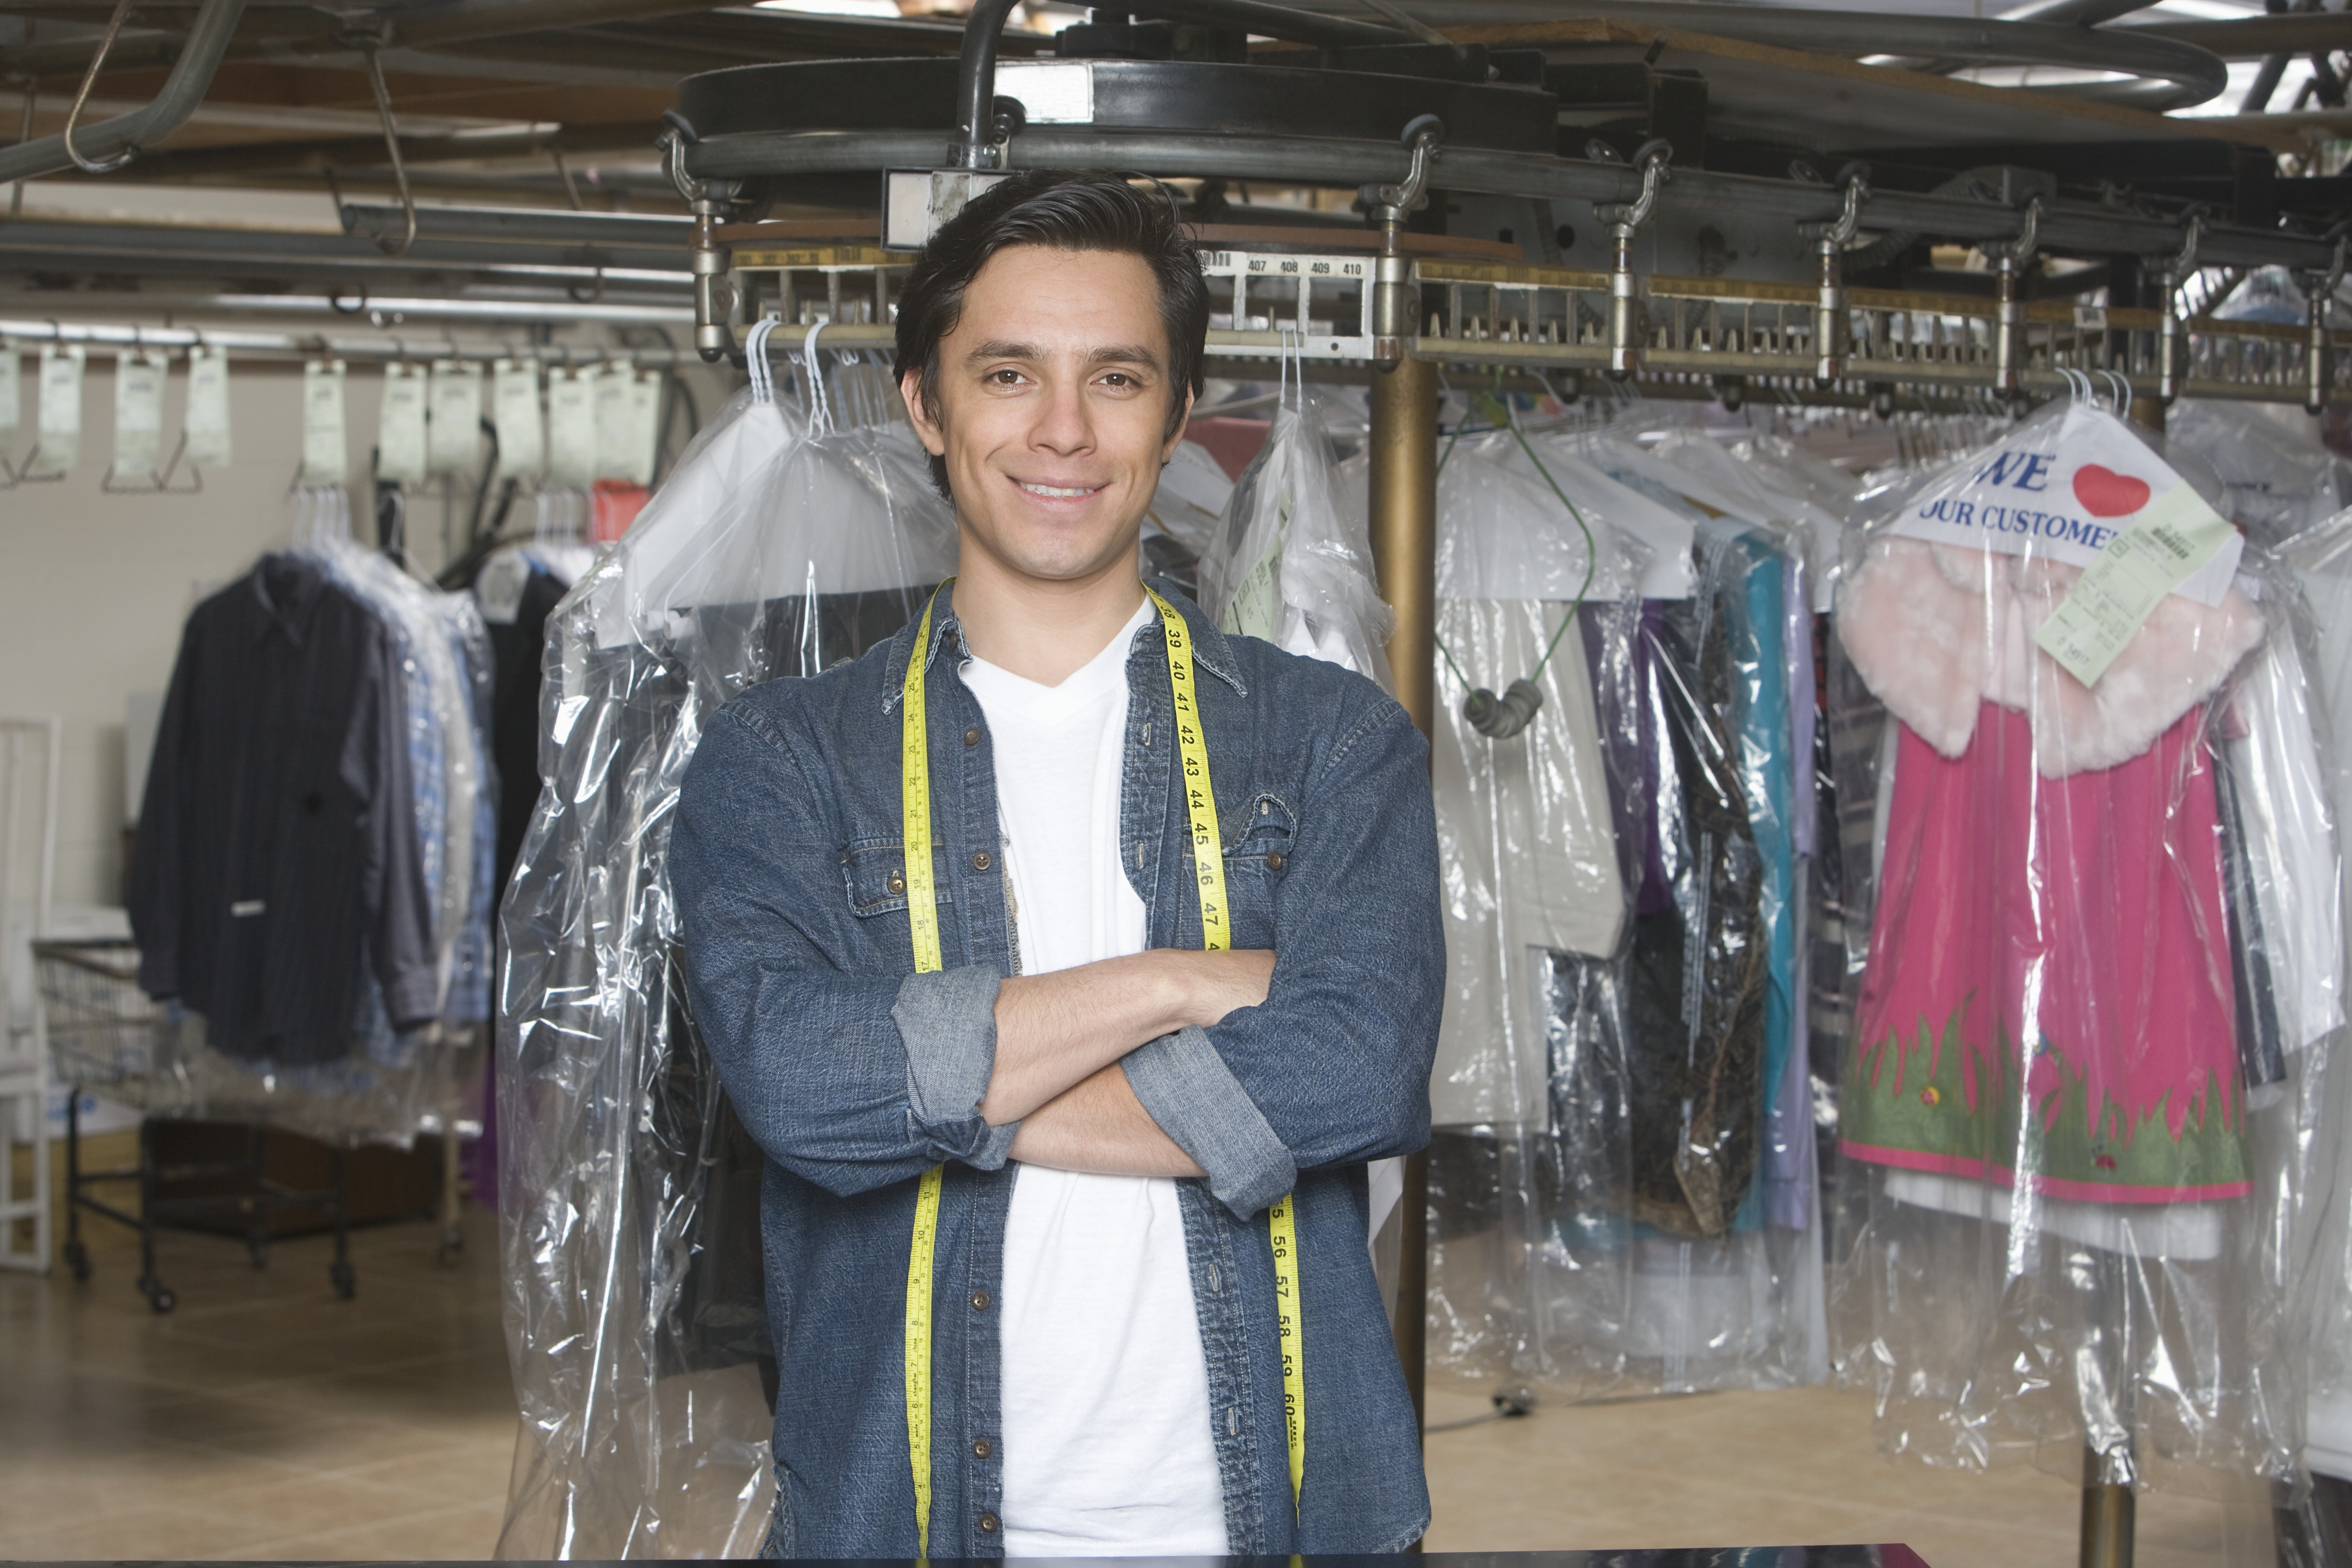 dry cleaner owner who is self employed